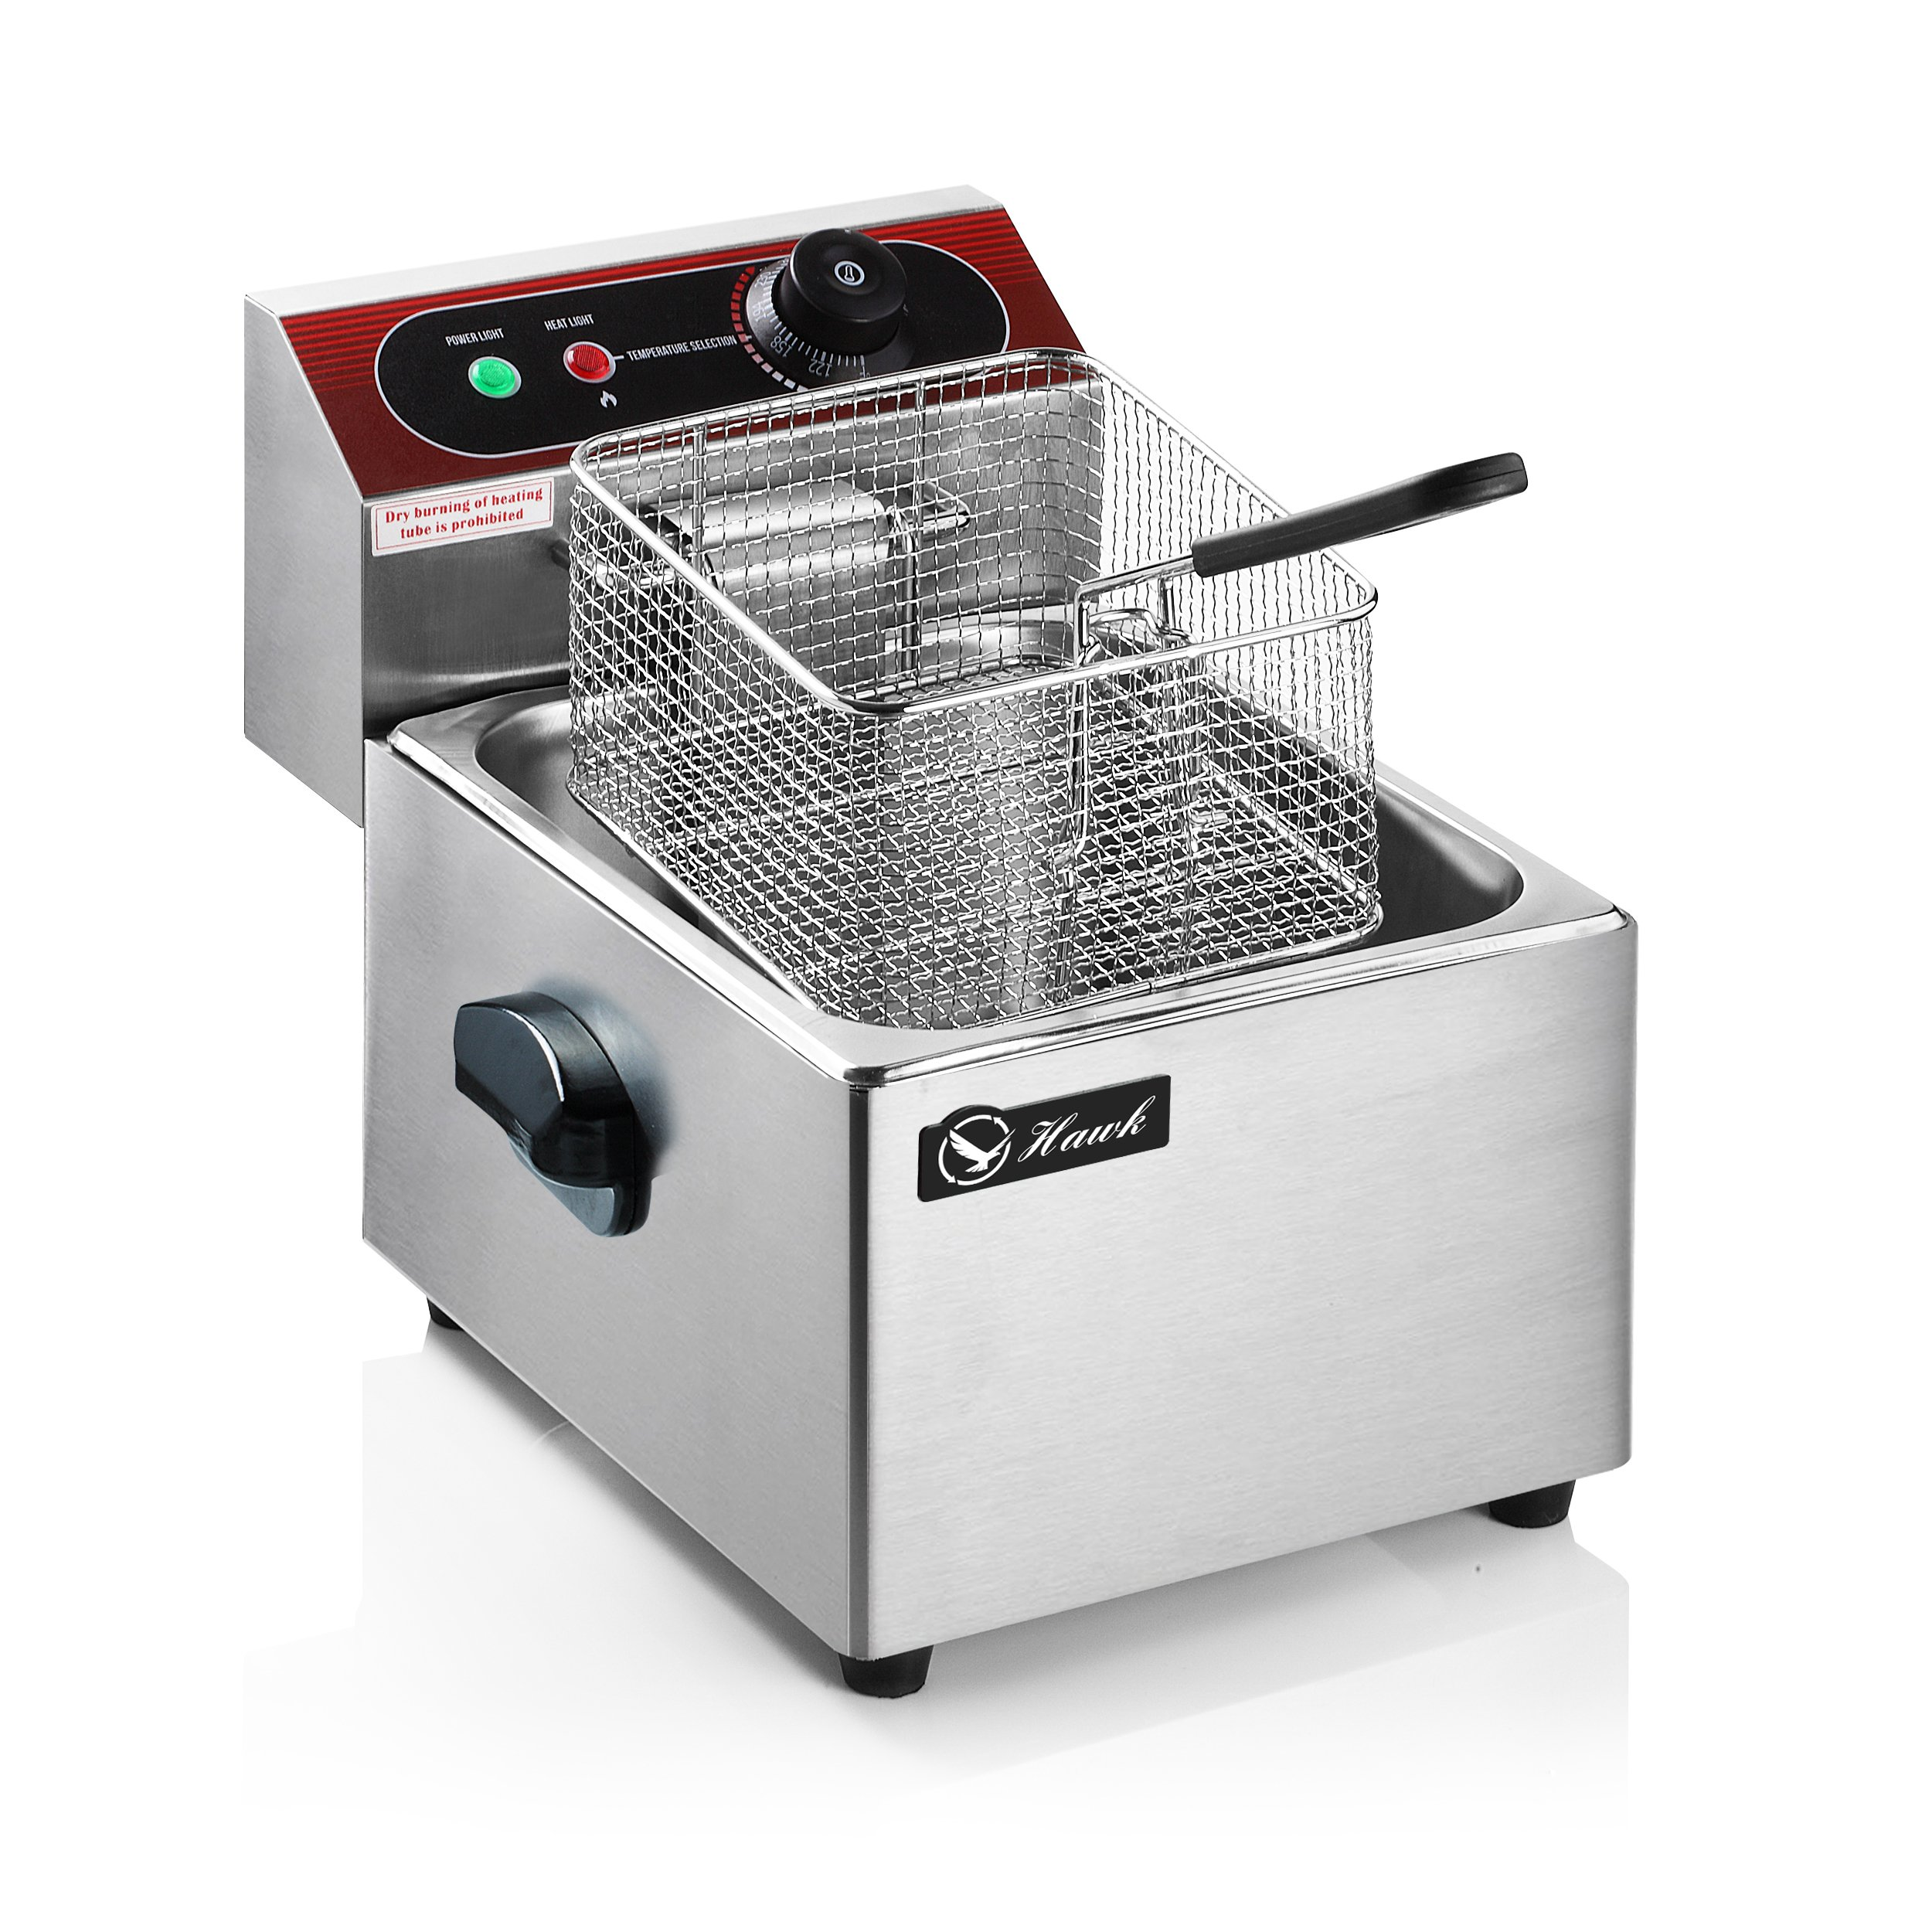 Professional 5.5L Electric Deep Fryer, Stainless Steel Chicken Chips Fryer with Basket Scoop for Commercial Restaurant Counter-top Family Food Cooking, Single Tank by Hawk (Image #1)